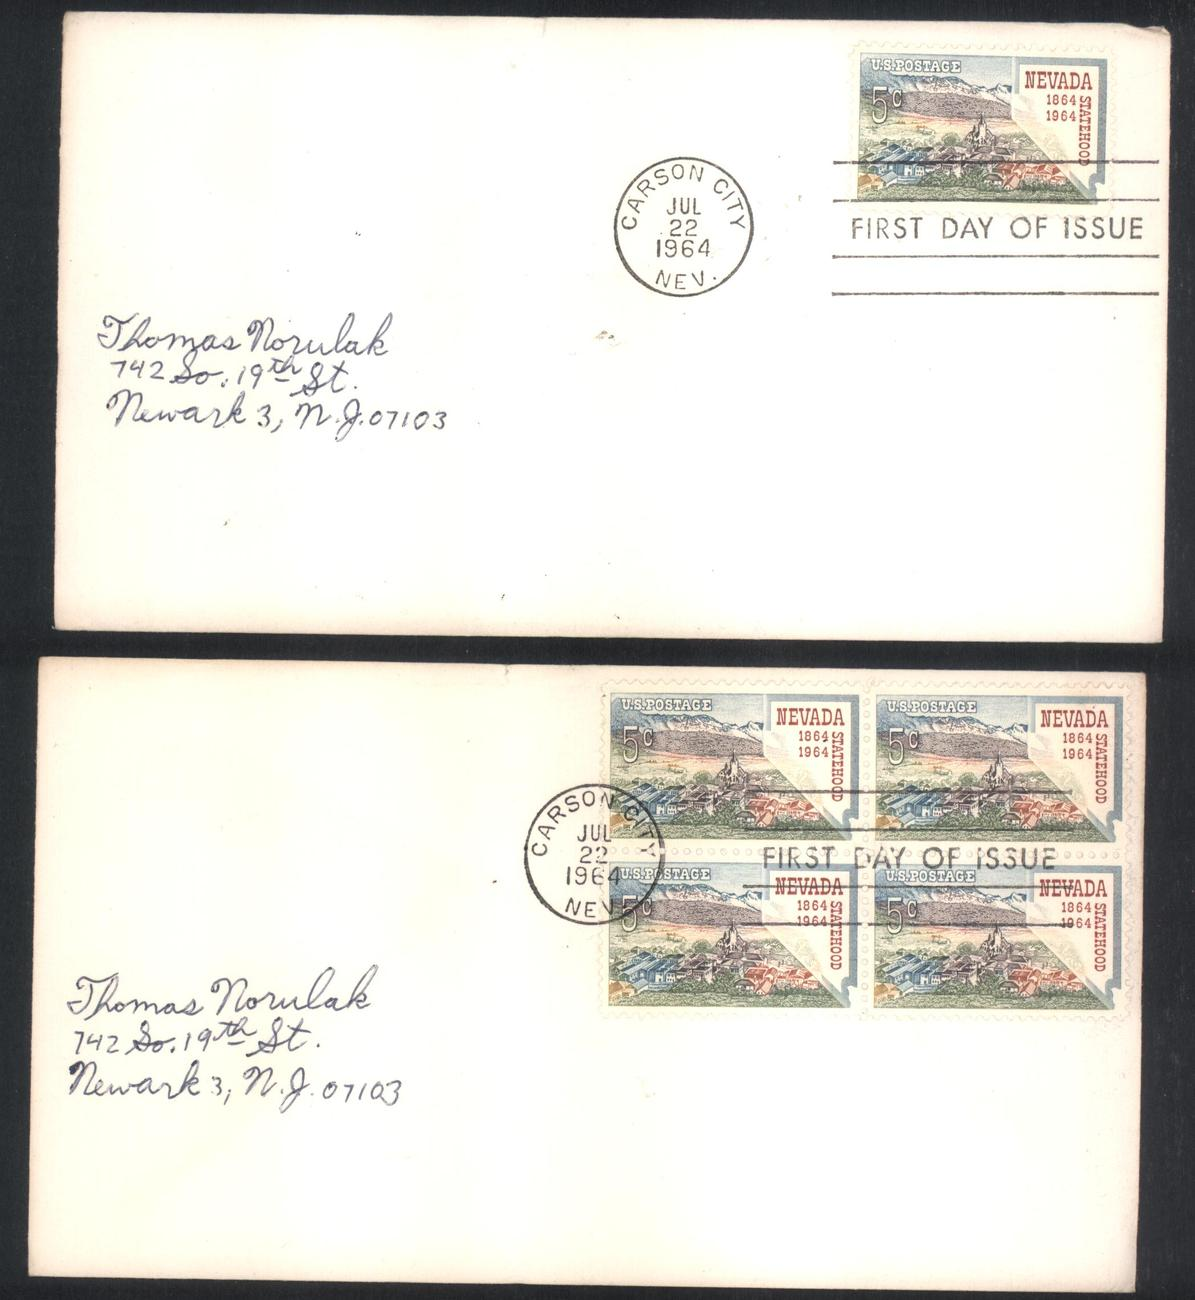 Nevada Statehood first day covers single & block of 4 Jul 22, 1964